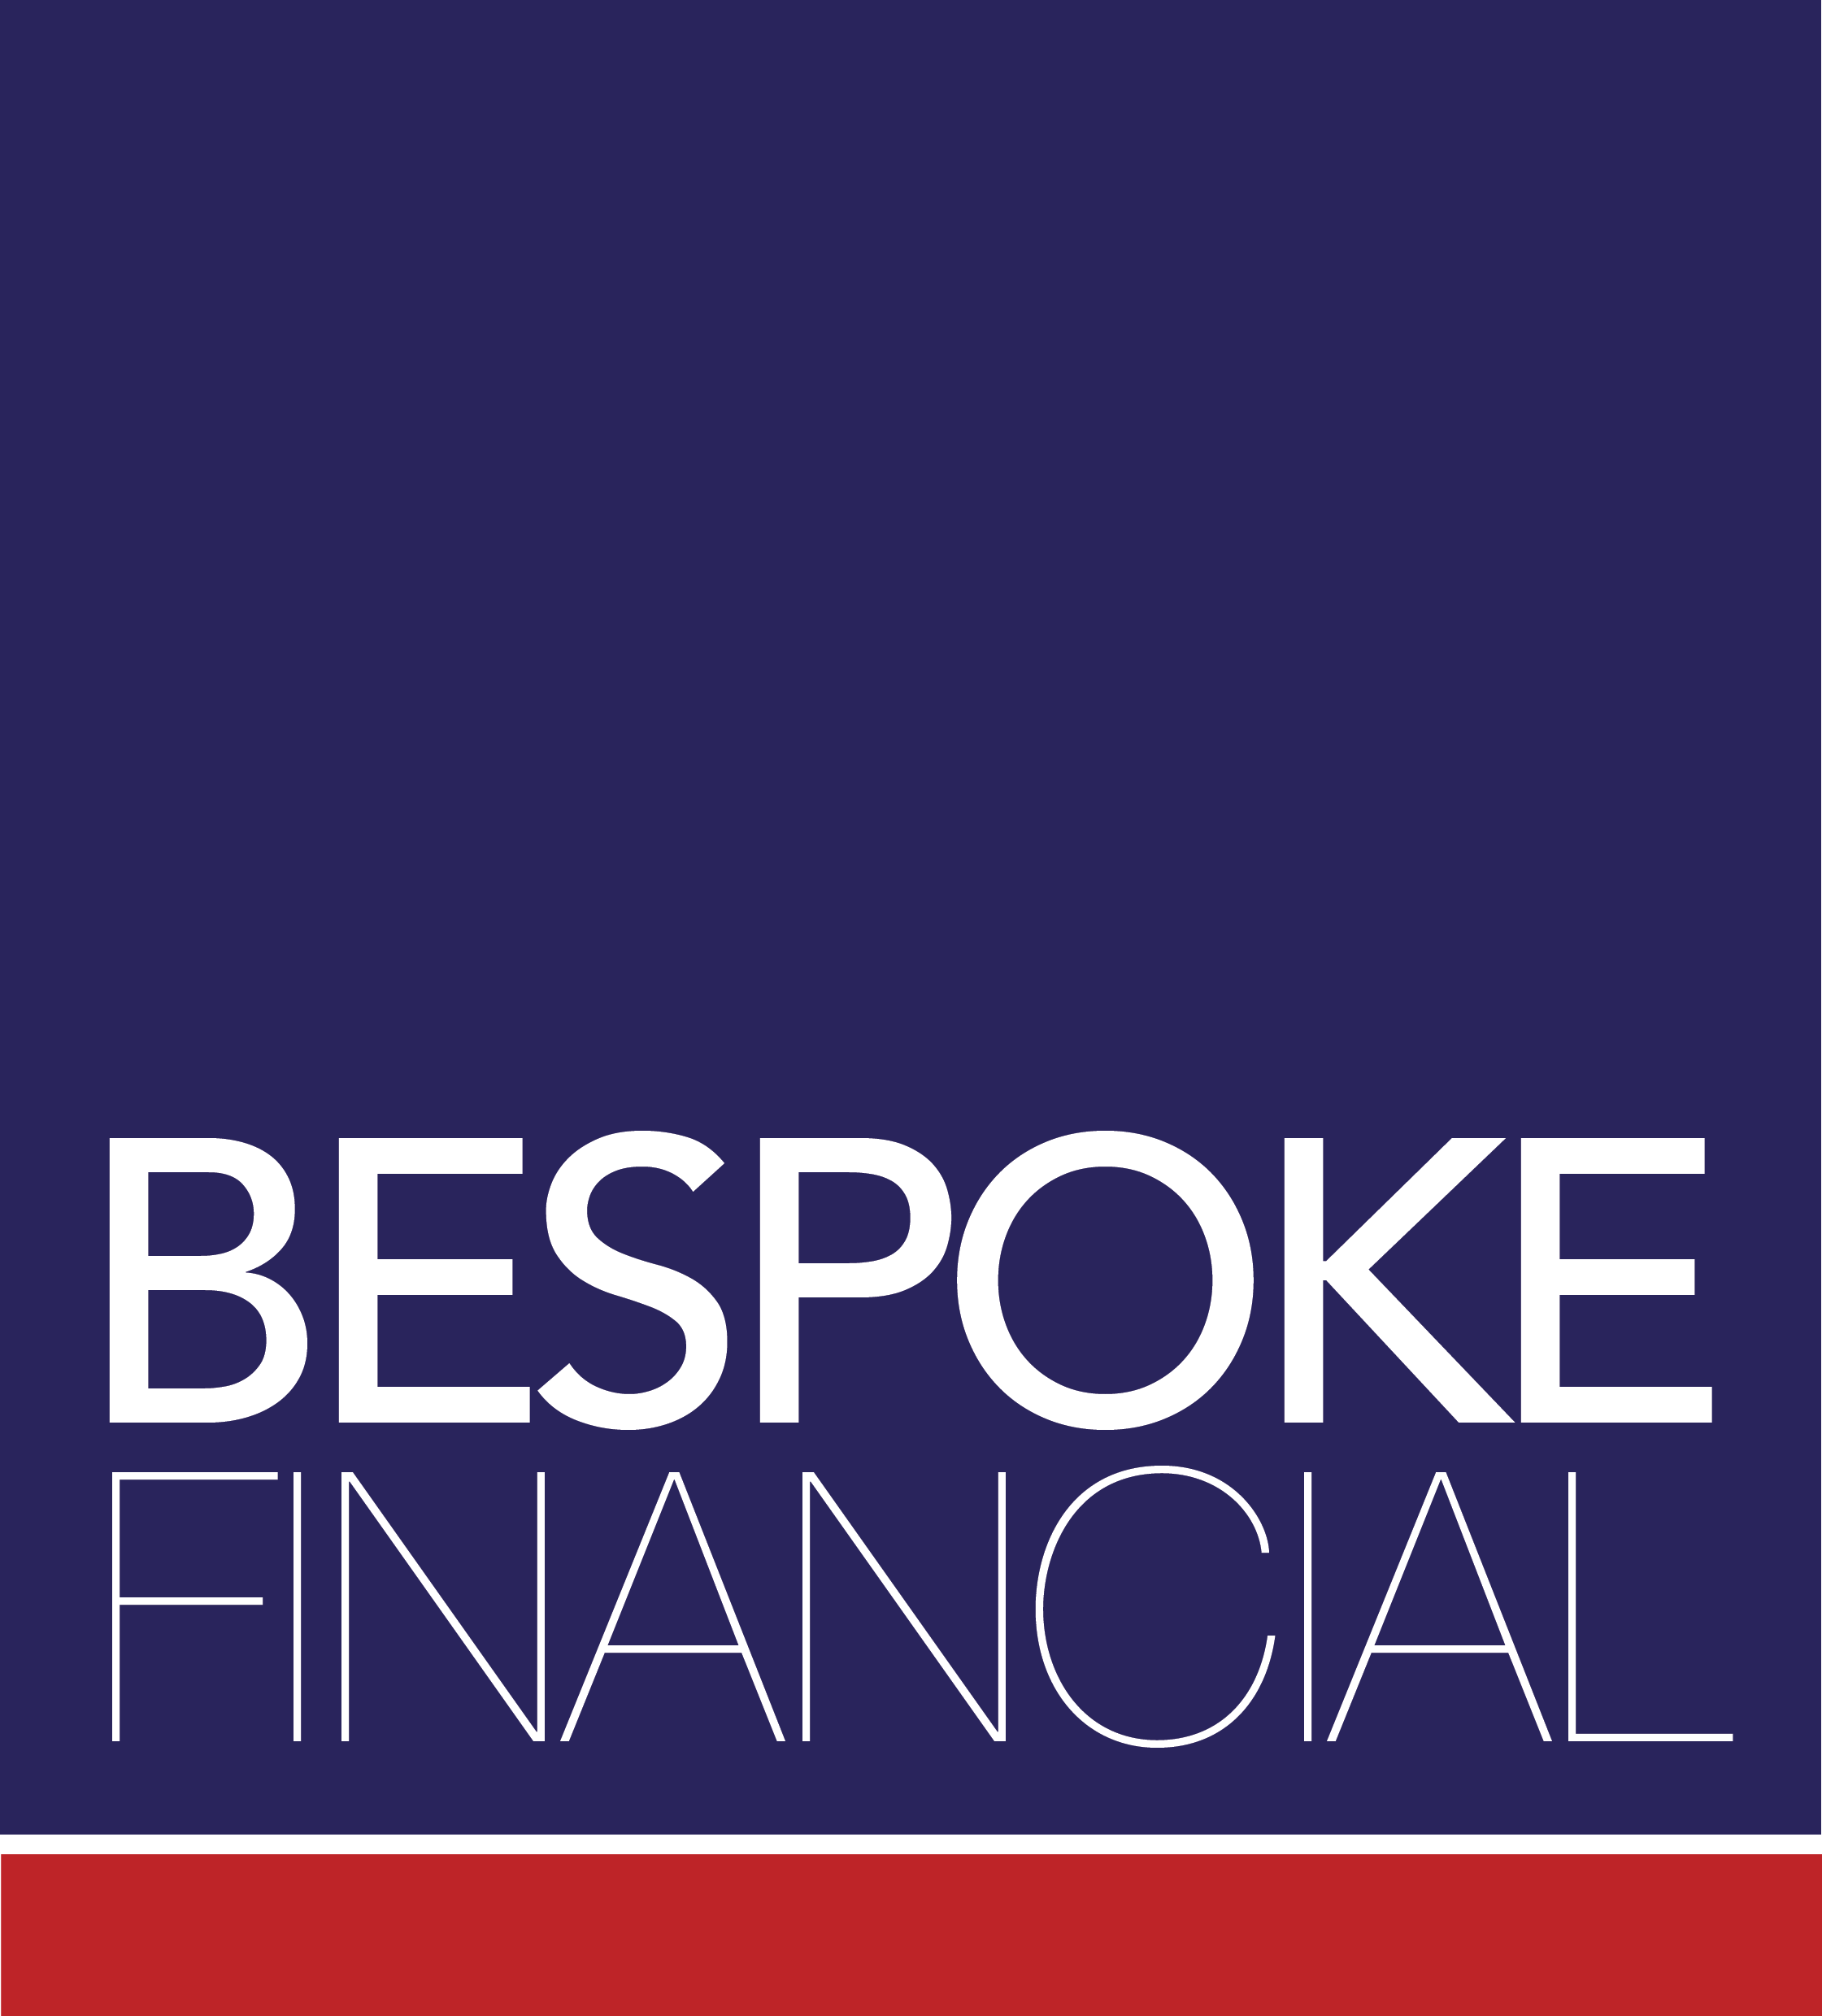 Bespoke Financial Teesside